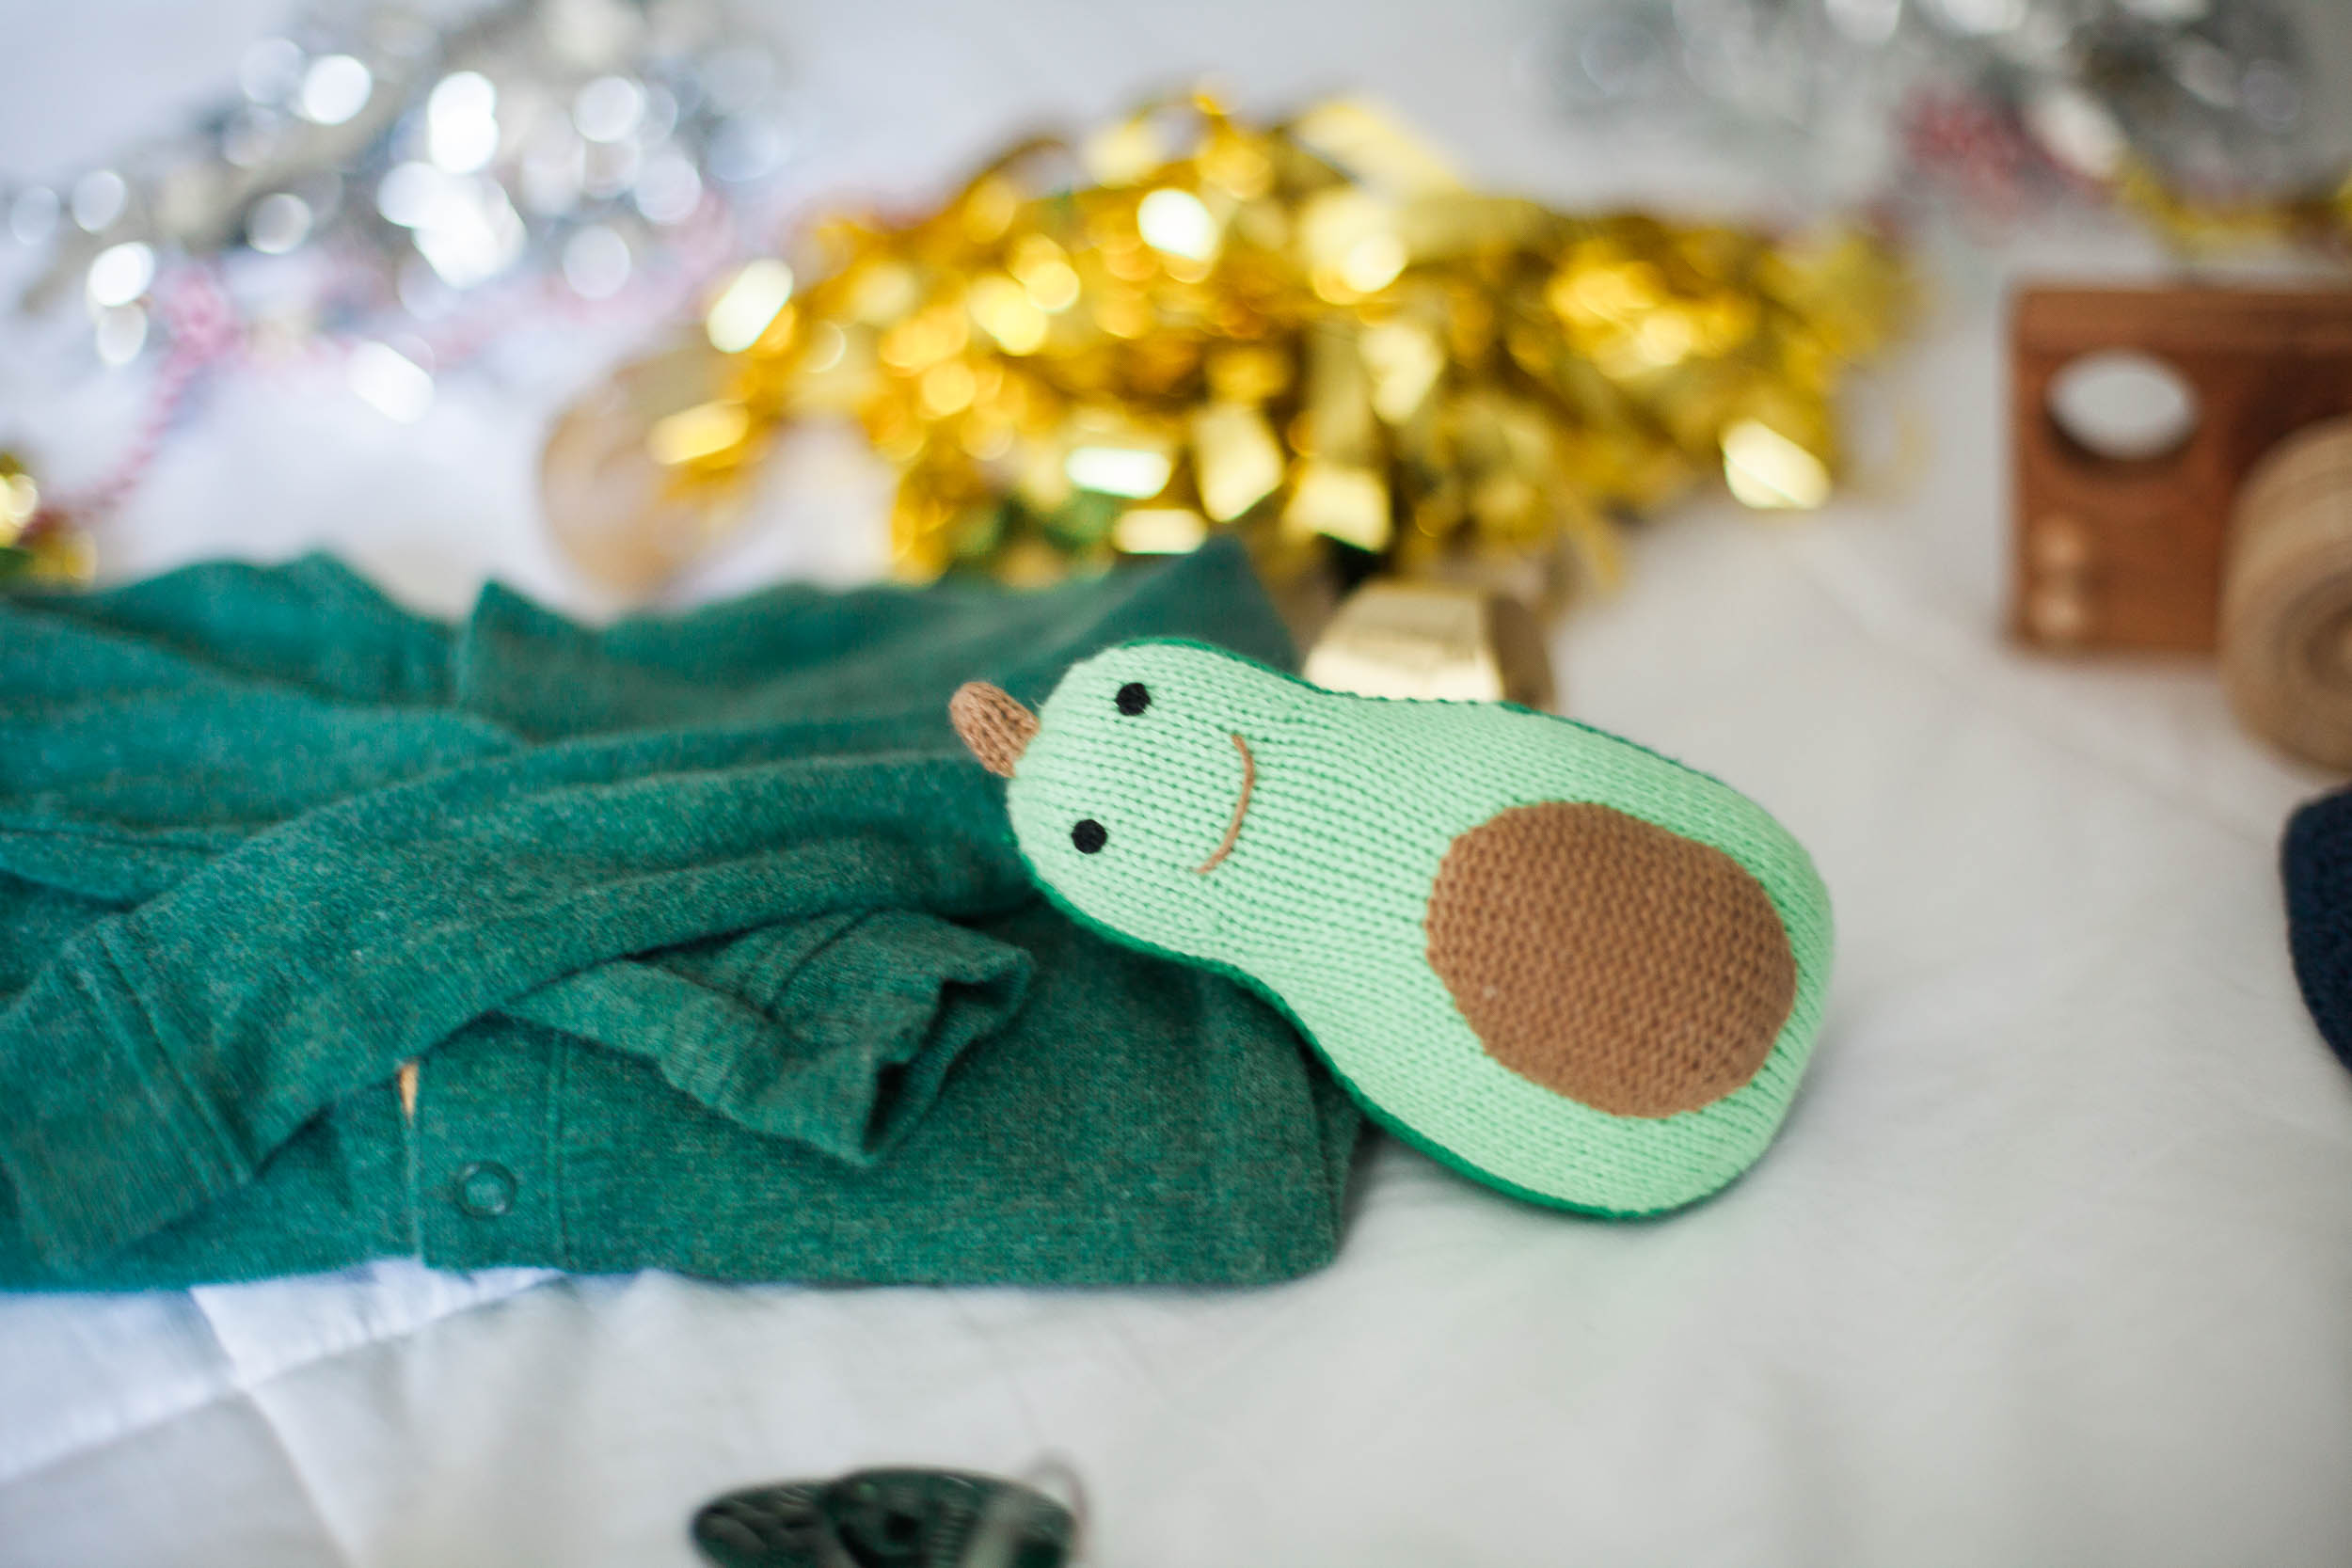 And This Toy From Estella NYC Does Both For Under 20 Its A Must Have You Can Find The Avocado Rattles HERE